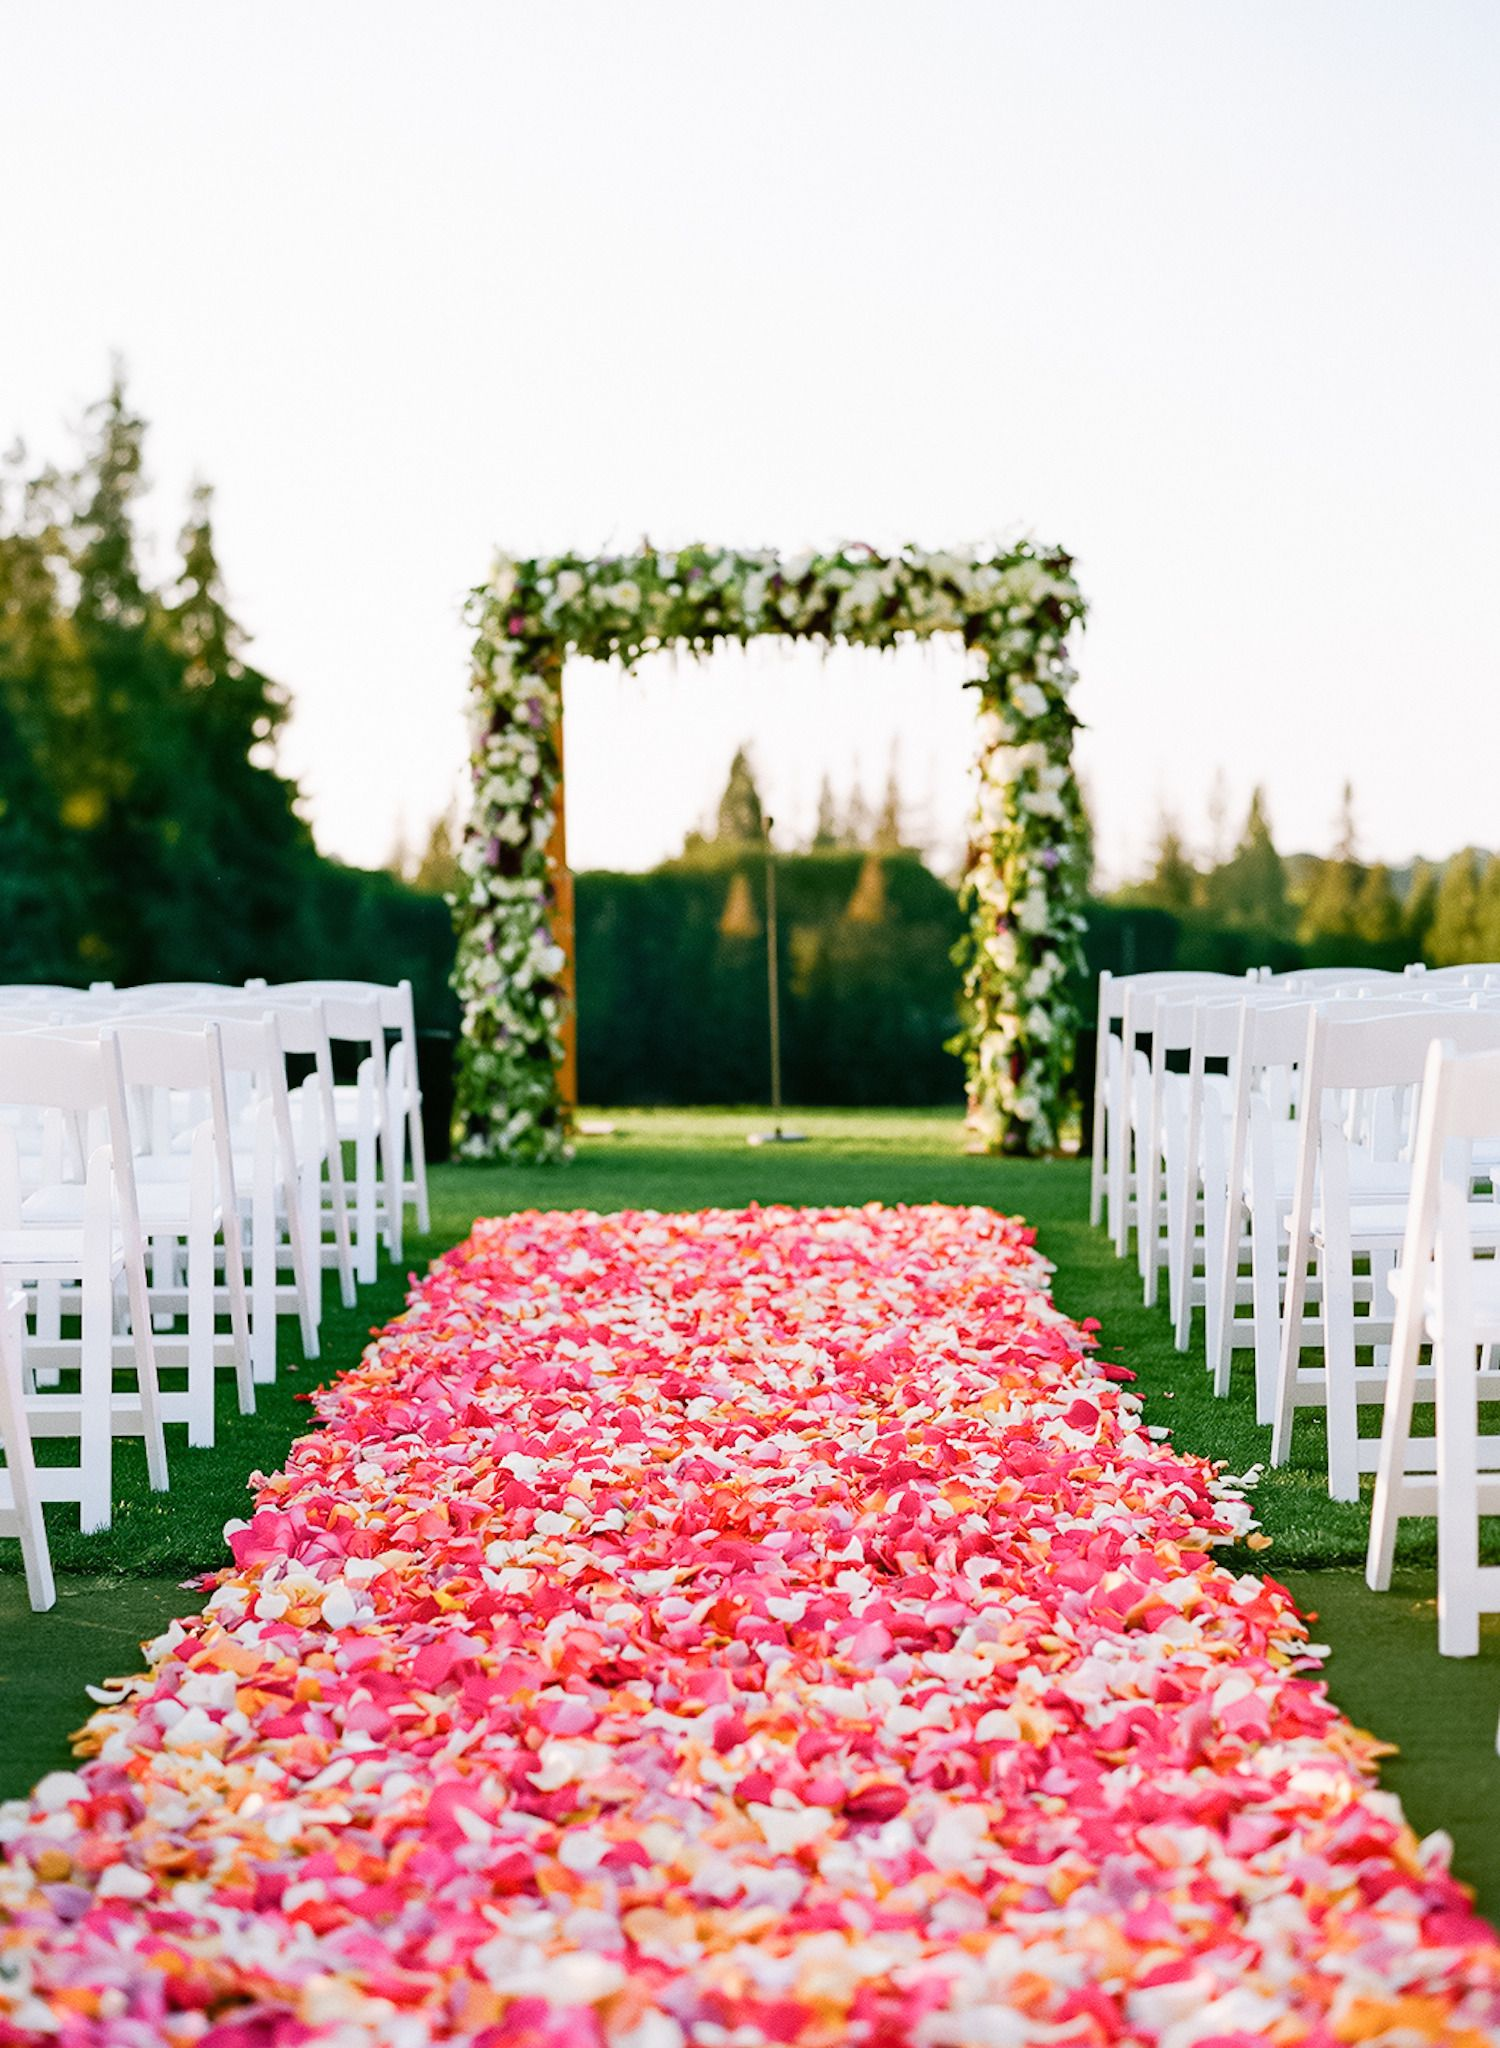 Pink + red petals down the aisle. #decor #ceremony Photography: Stephanie Pool - stephaniepool.com Read More: http://www.stylemepretty.com/2014/08/28/colorful-spring-palo-alto-wedding/